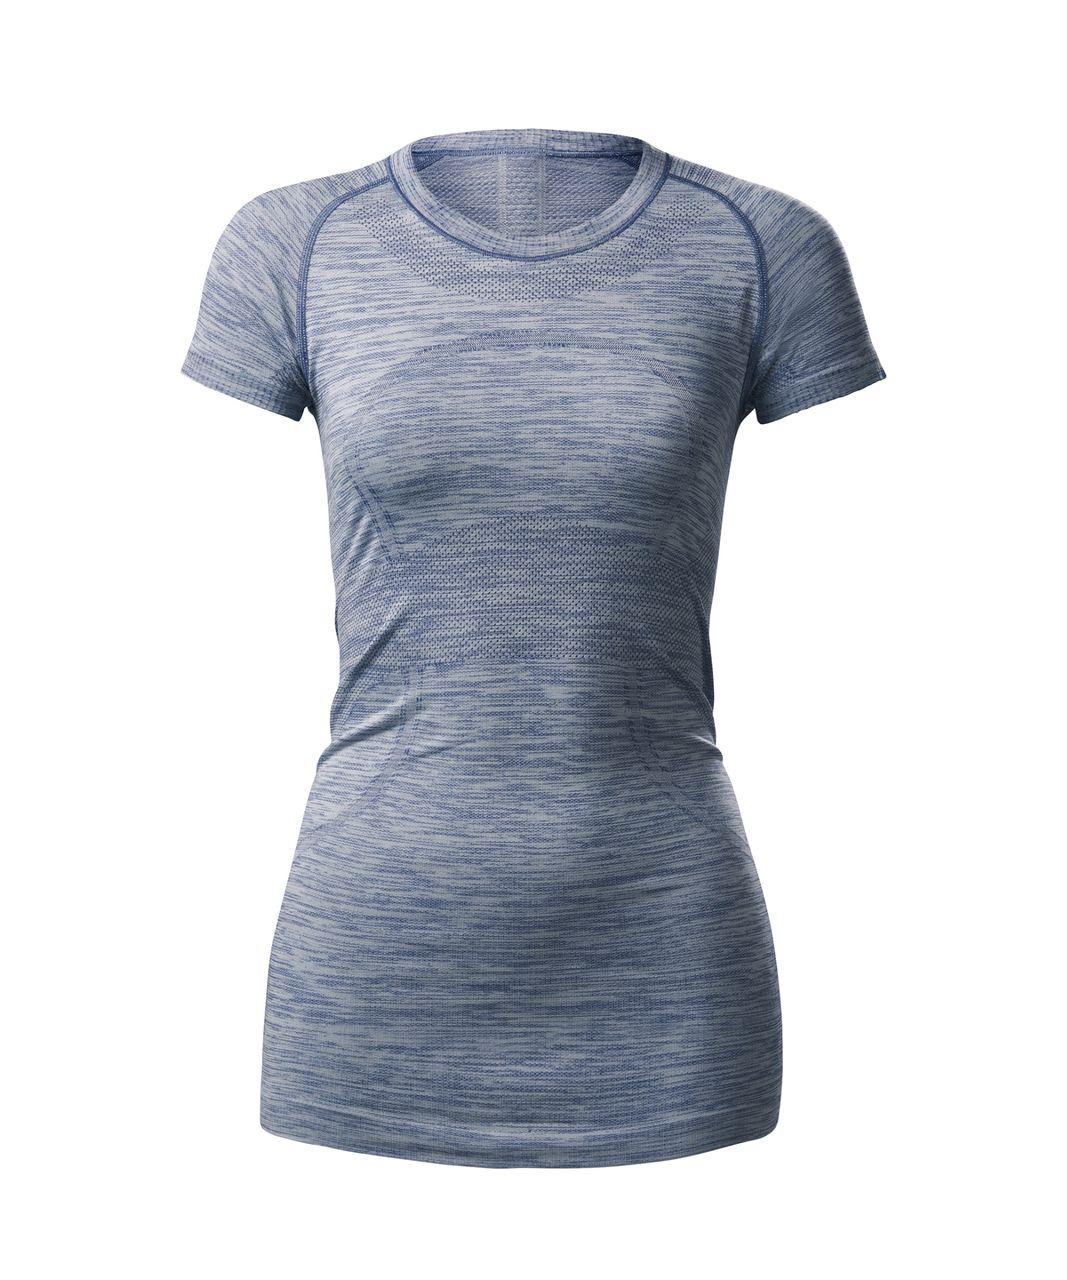 Lululemon Swiftly Tech Short Sleeve Crew - Heathered Hero Blue (First Release)